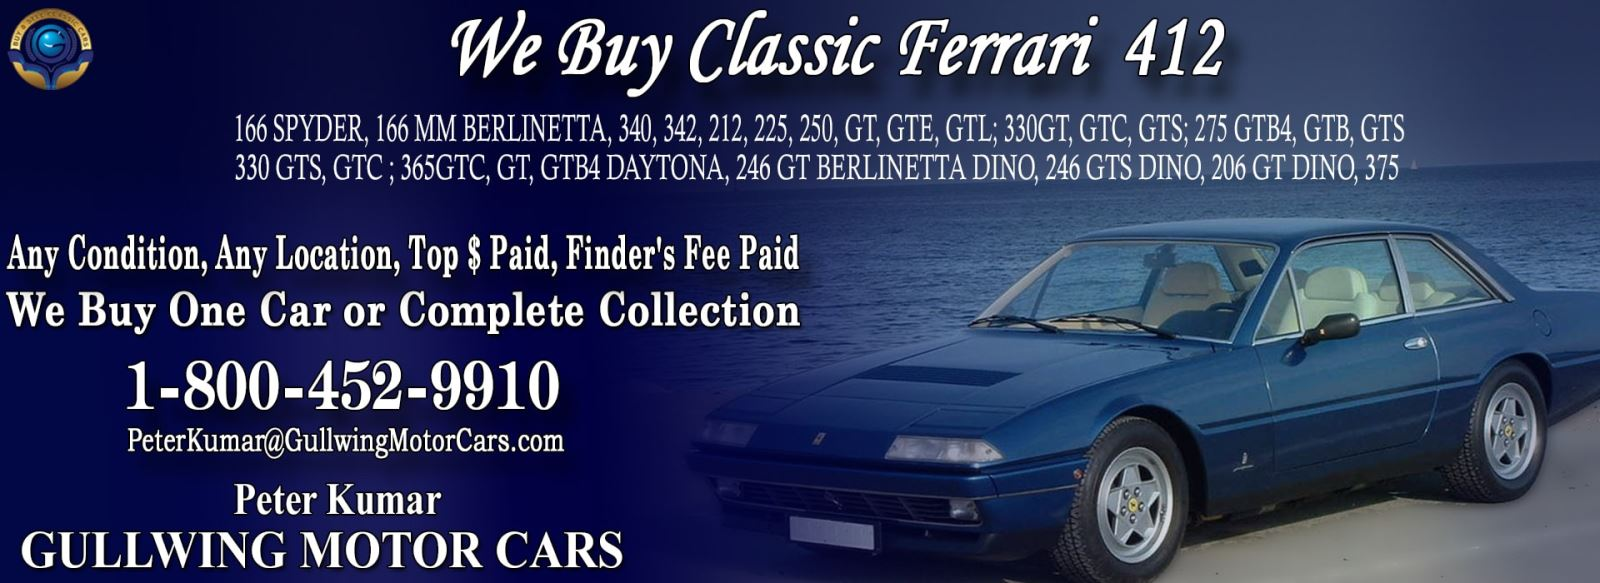 Classic Ferrari 412 for sale, we buy vintage Ferrari 412. Call Peter Kumar. Gullwing Motor